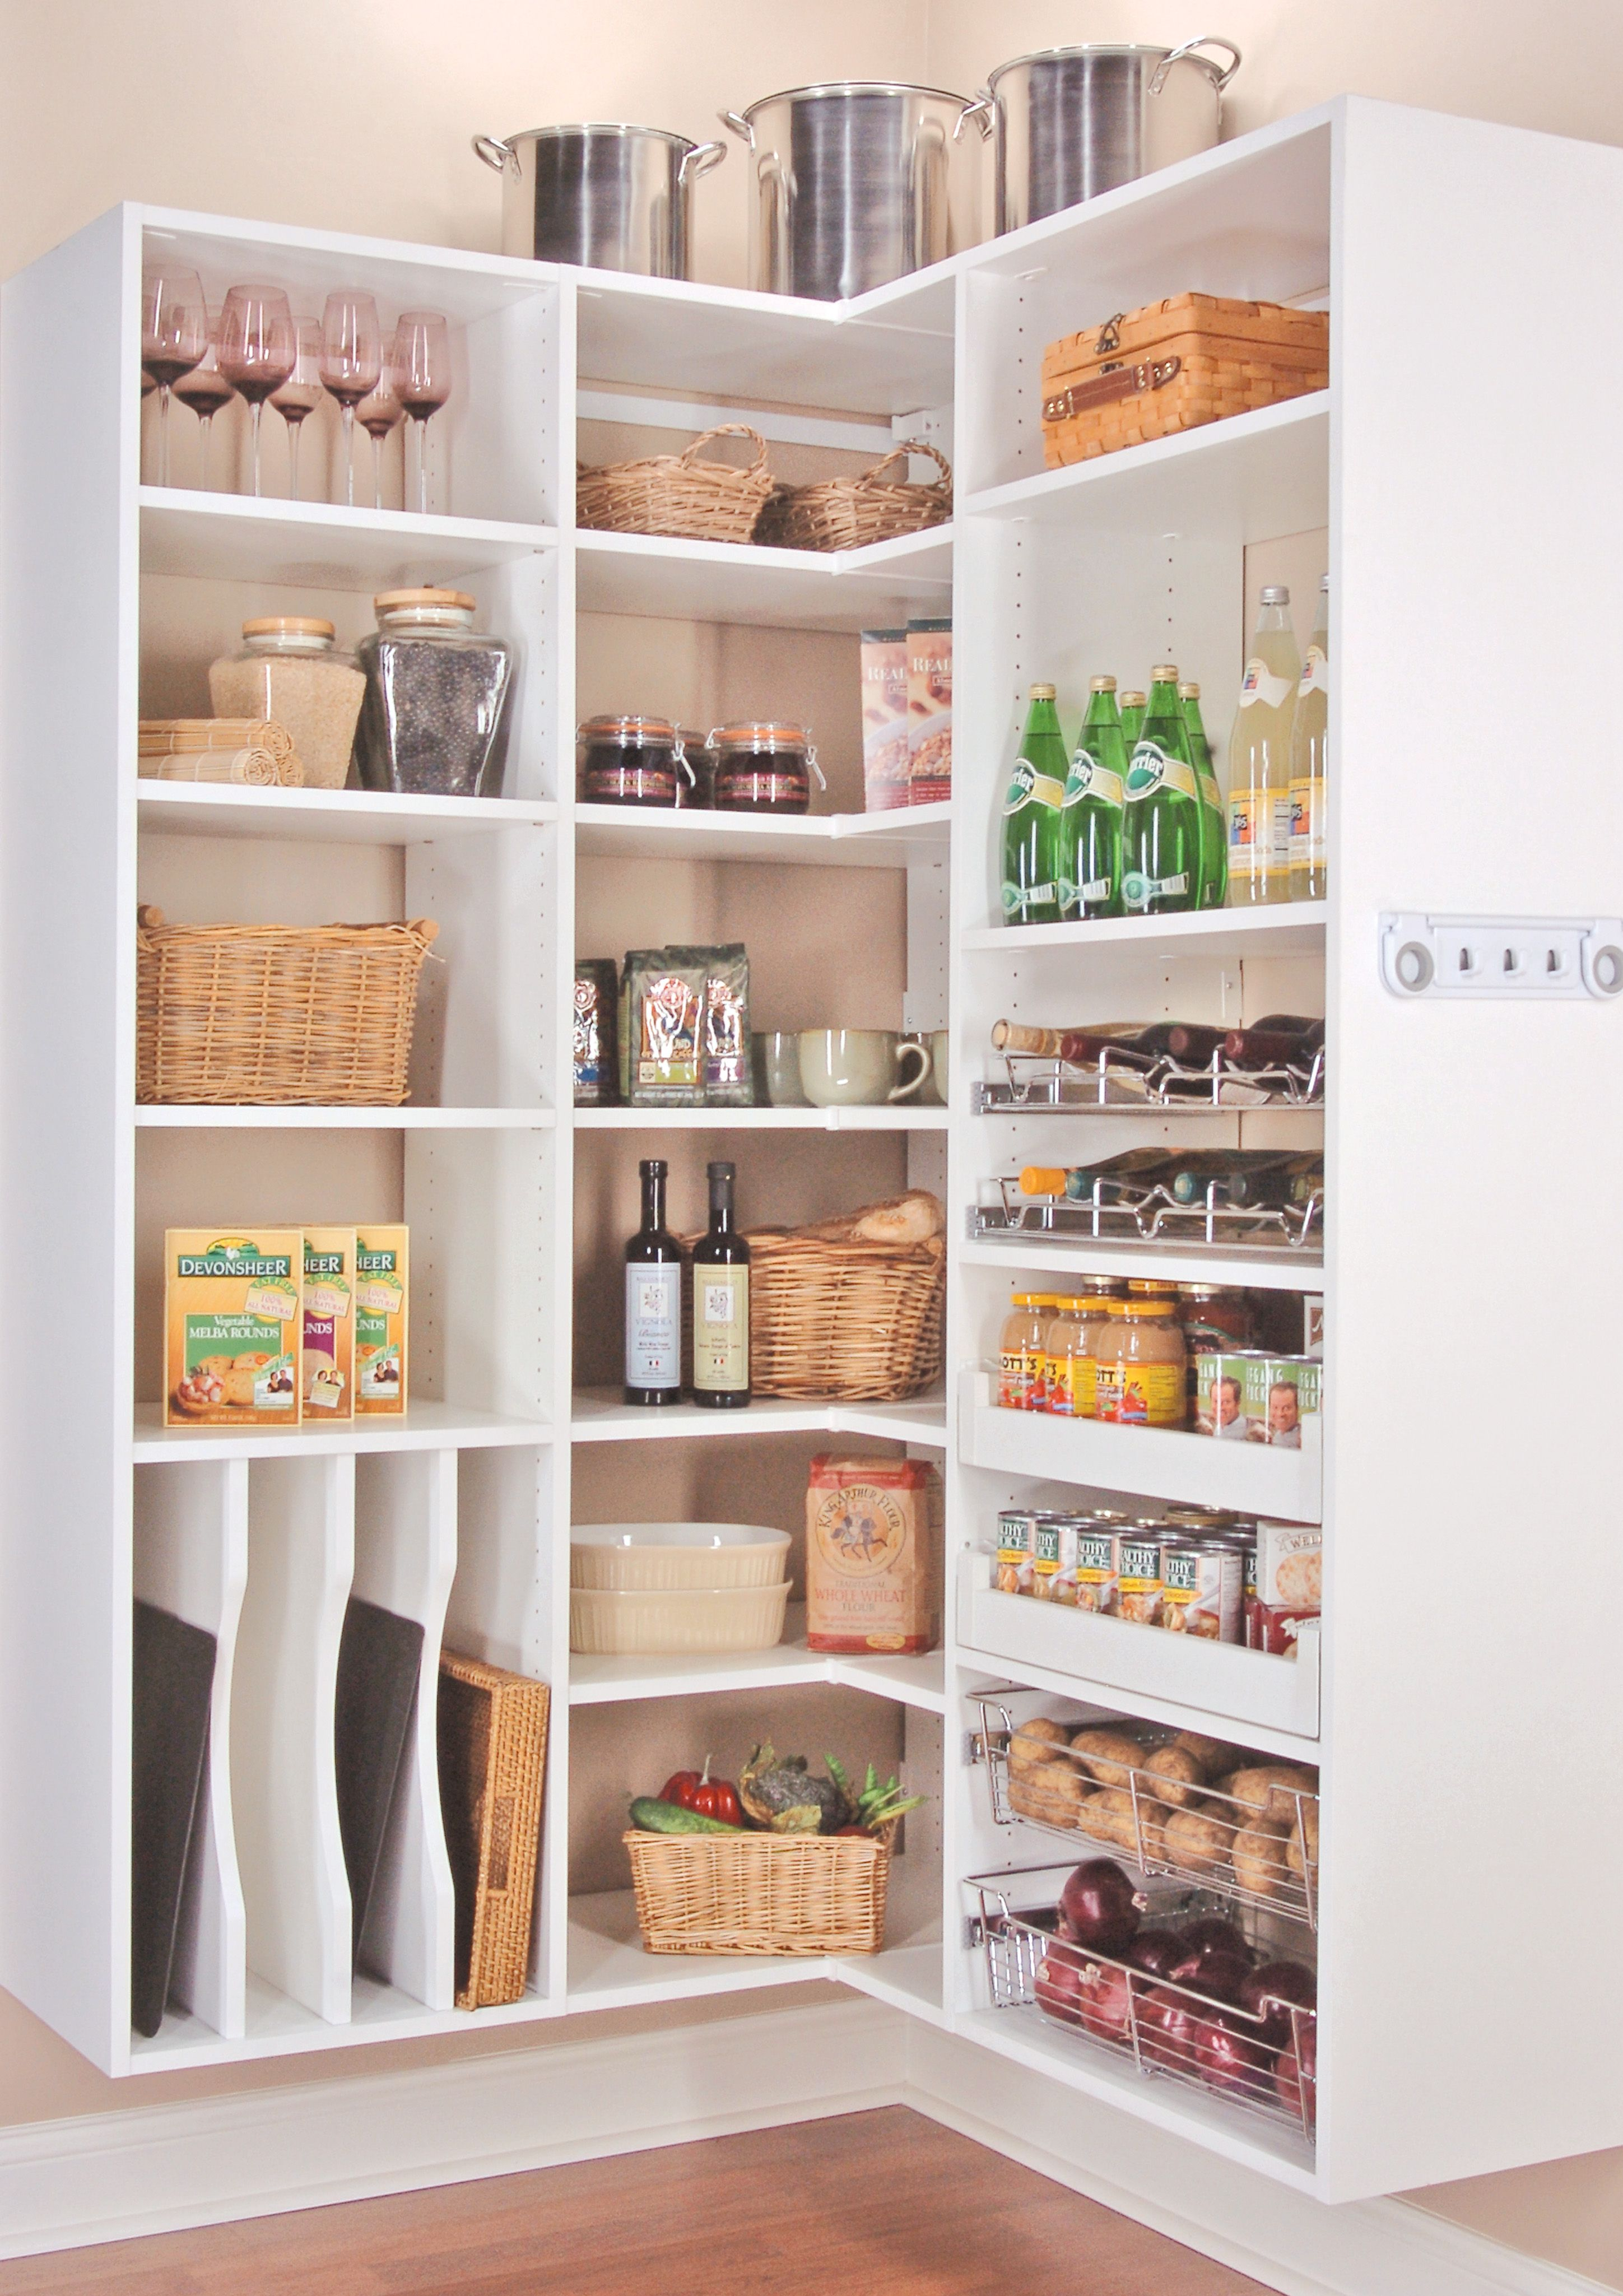 Ikea Kitchen Organizer Decorations Ealing White Pantry Cabinet With Pull Out Swing Rack Back Of Door As Ideas Smart